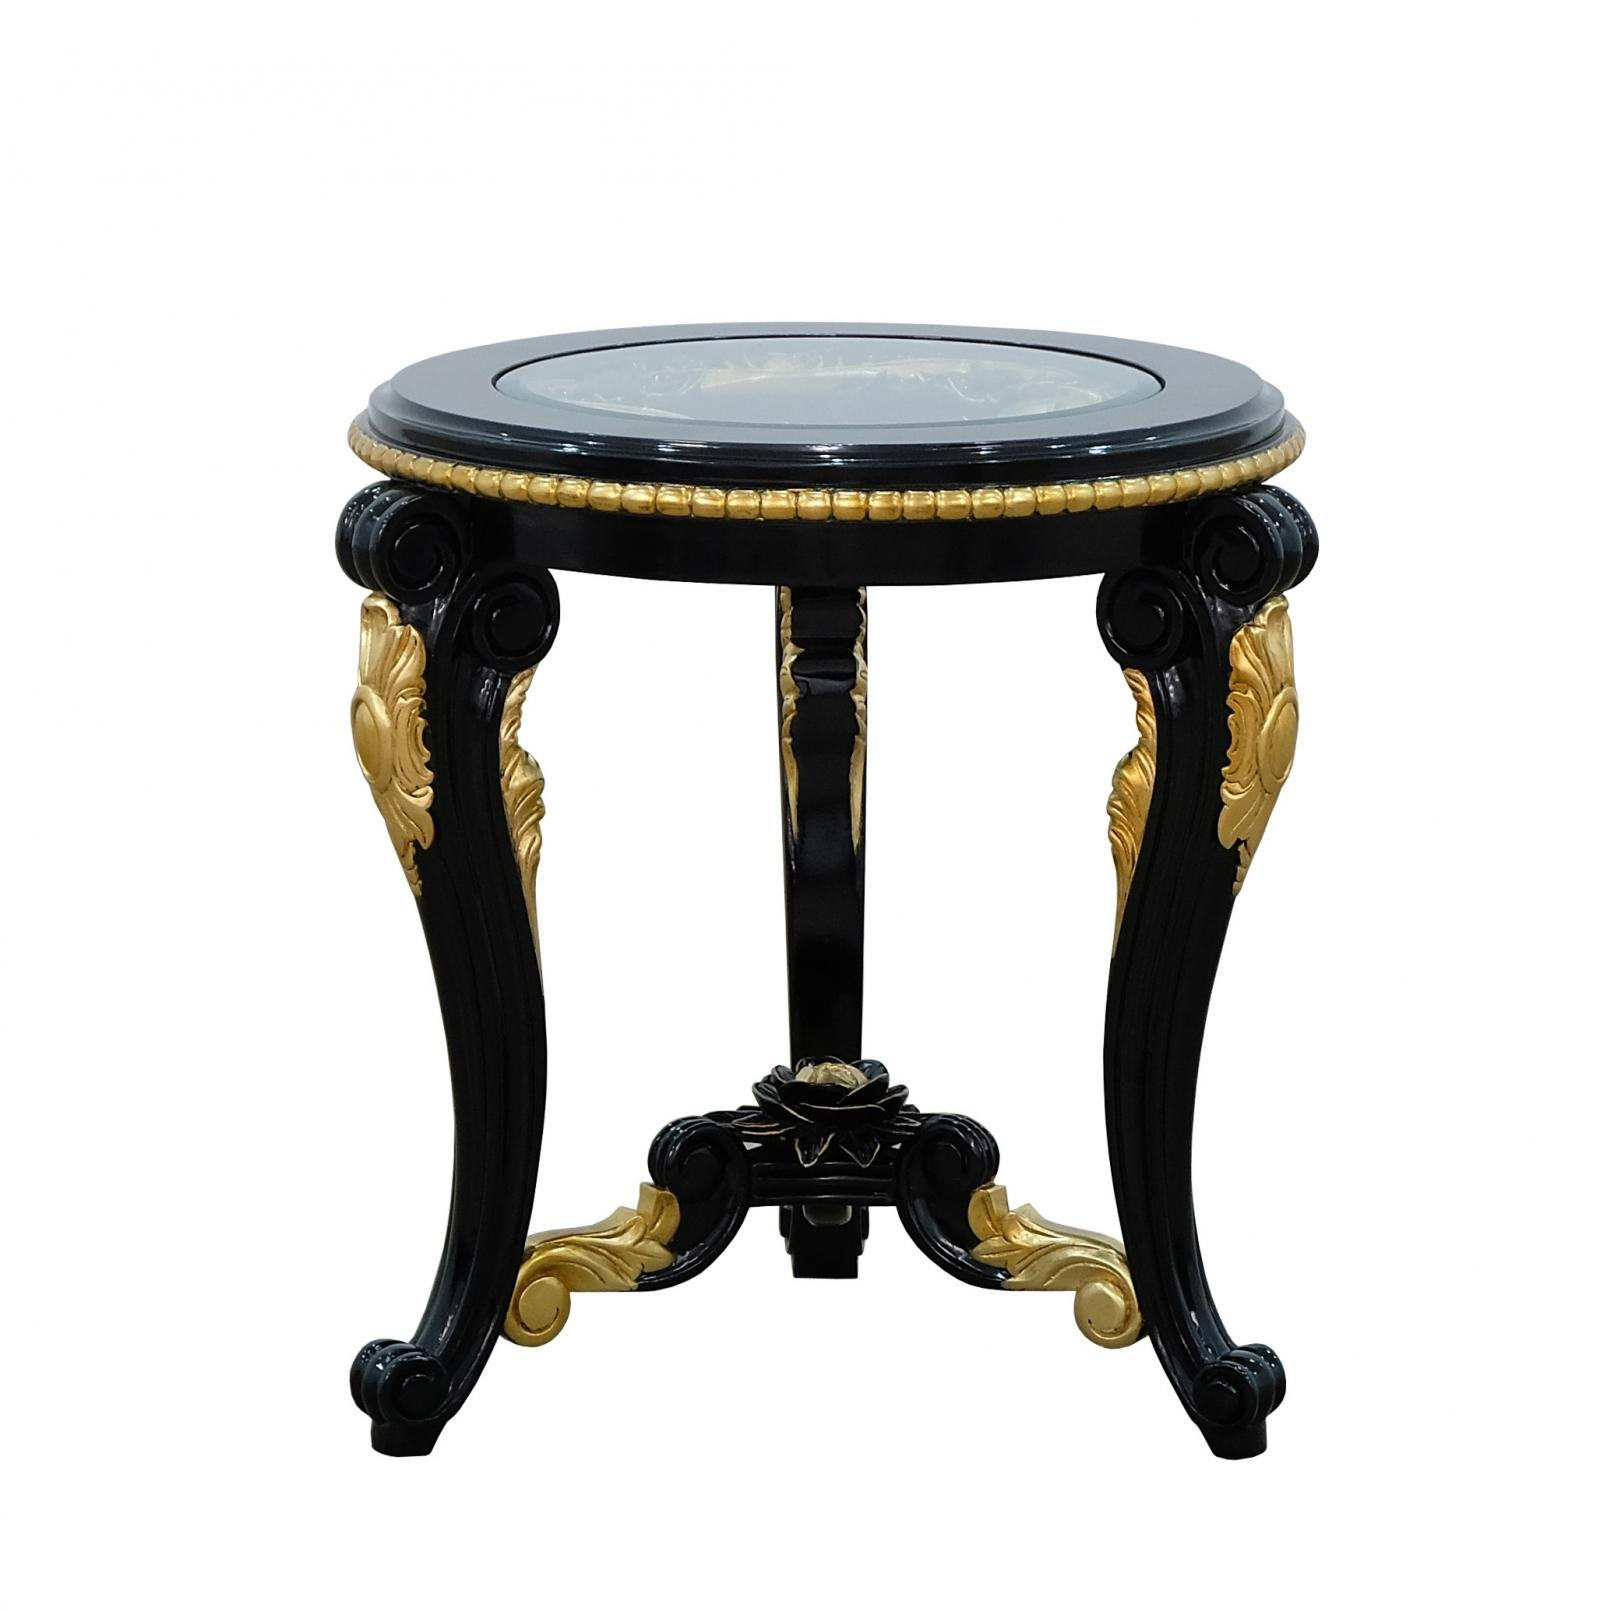 Classic  Traditional Beige  Gold  Antique   Black Wood  Solid Hardwood and  End Table EUROPEAN FURNITURE 30019-ET